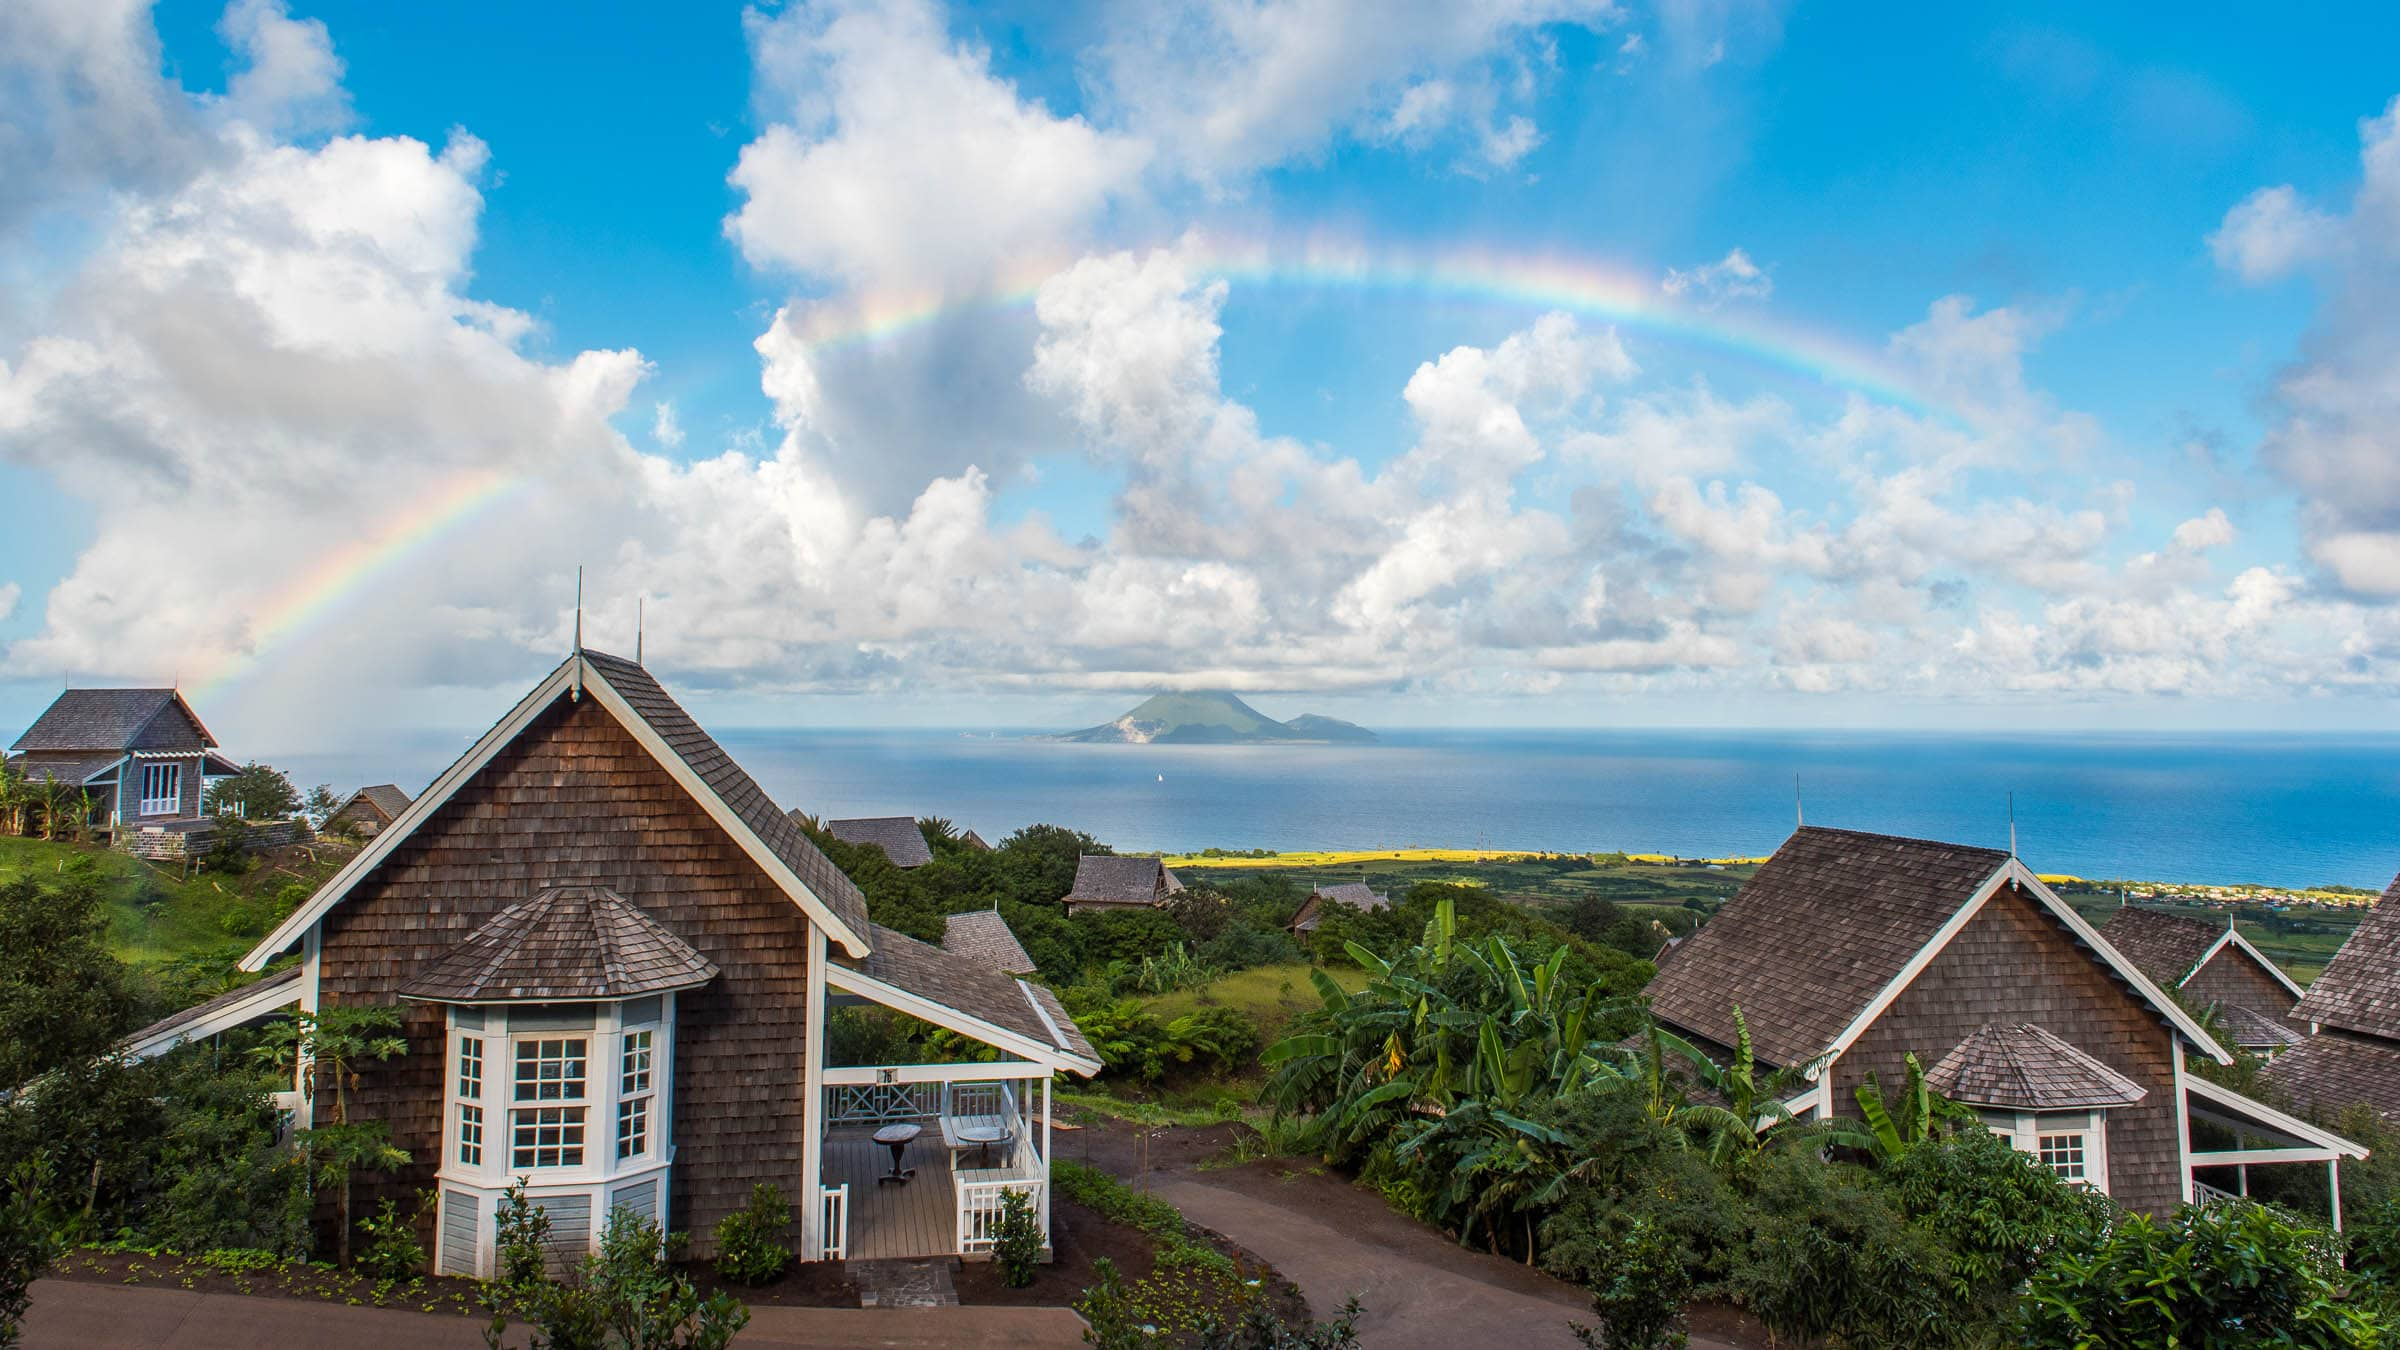 Rainbow over Belle Mont Farm on Kittitian Hill by Patrick Bennett